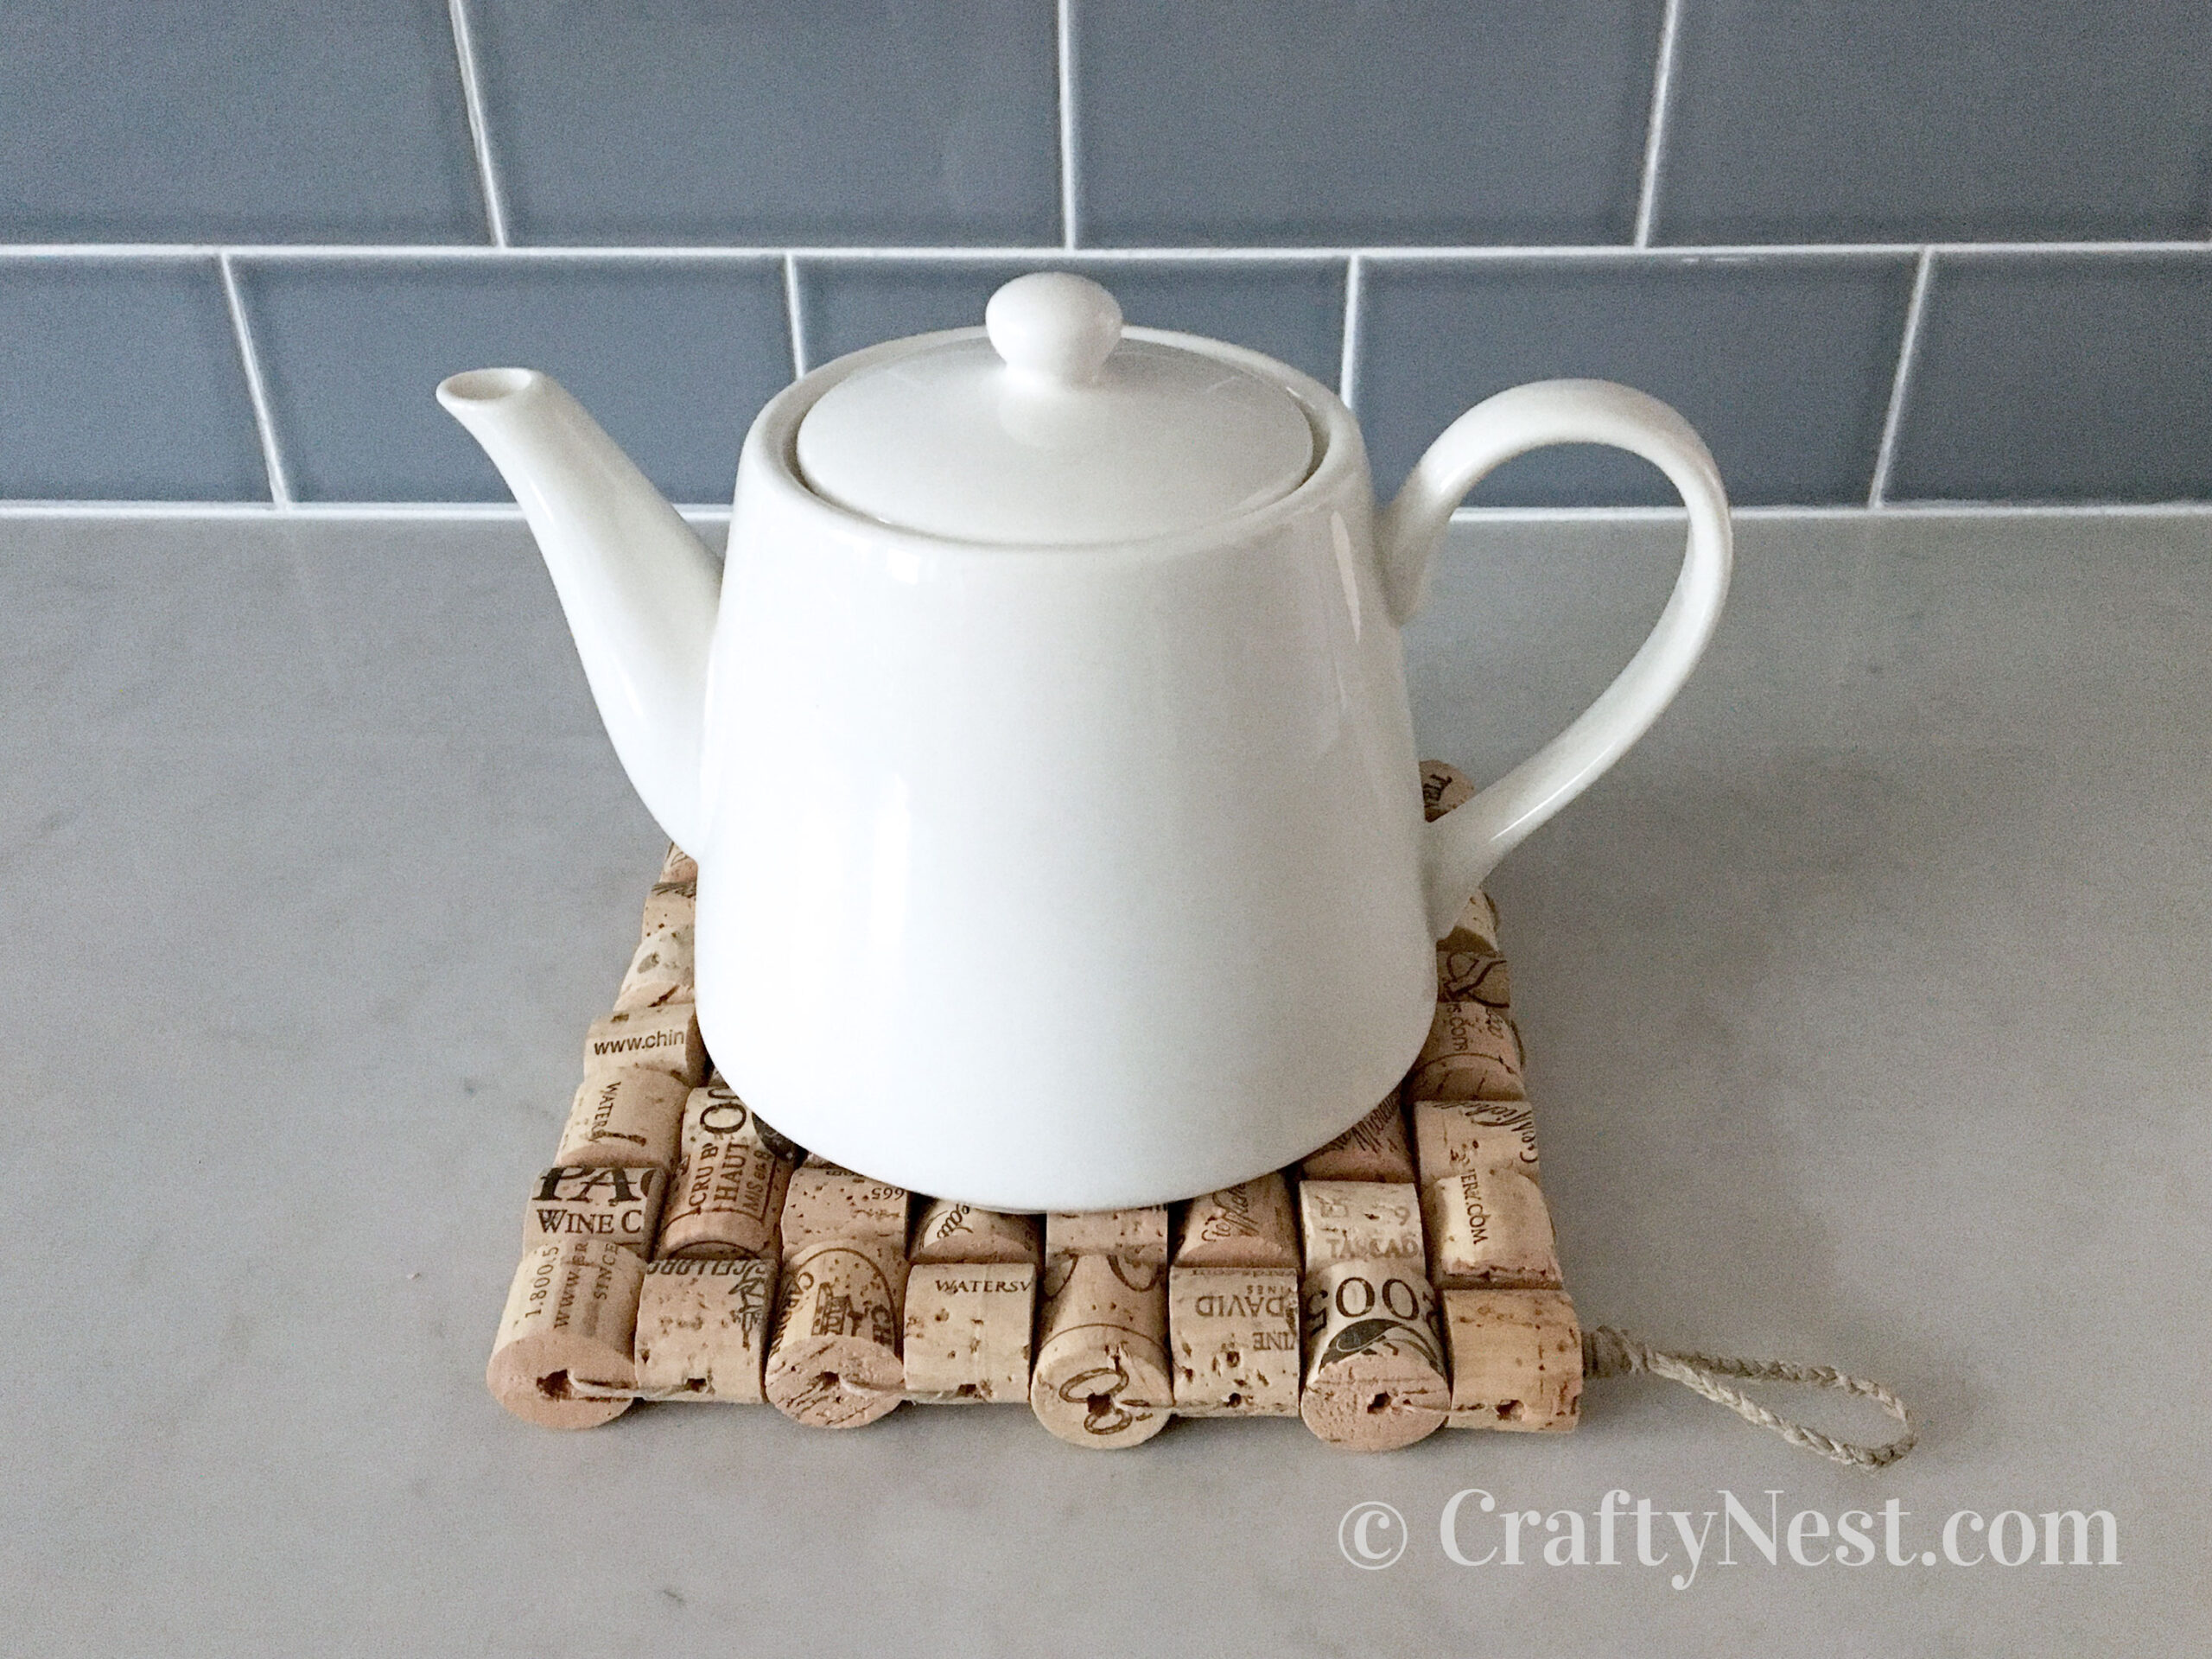 Teapot on a wine-cork trivet, photo